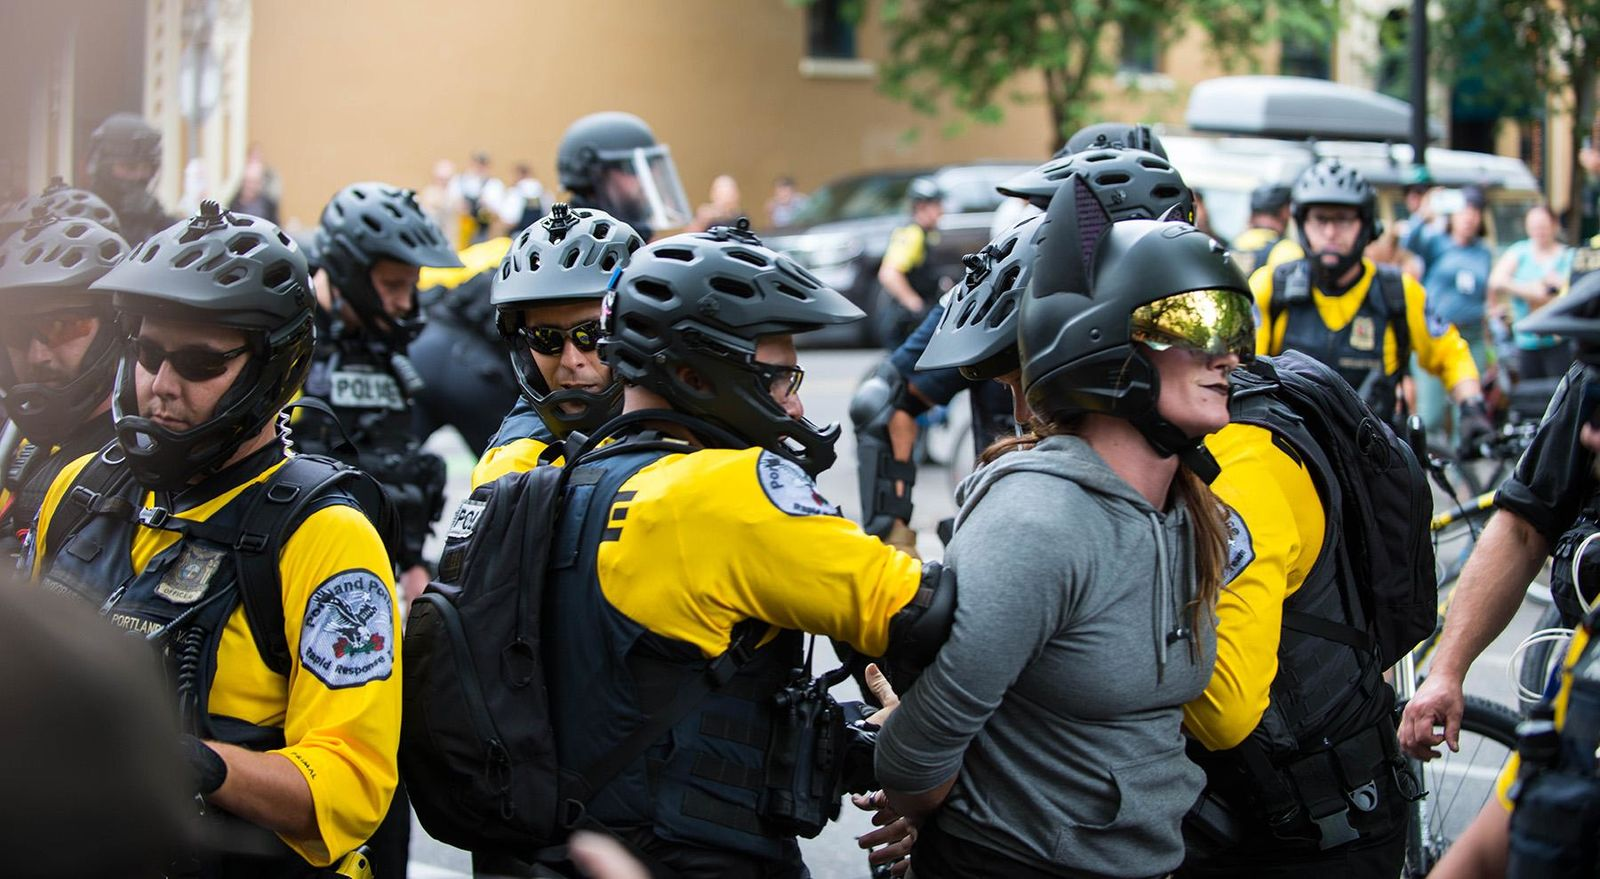 Dueling demonstrations clashed in Portland's Tom McCall Waterfront Park on Aug. 17, 2019. KATU News confirmed Proud Boys and Portland's Liberation groups are in attendance. Some people dressed in costumes to help distract demonstrators from violence. Photo by Tristan Fortsch